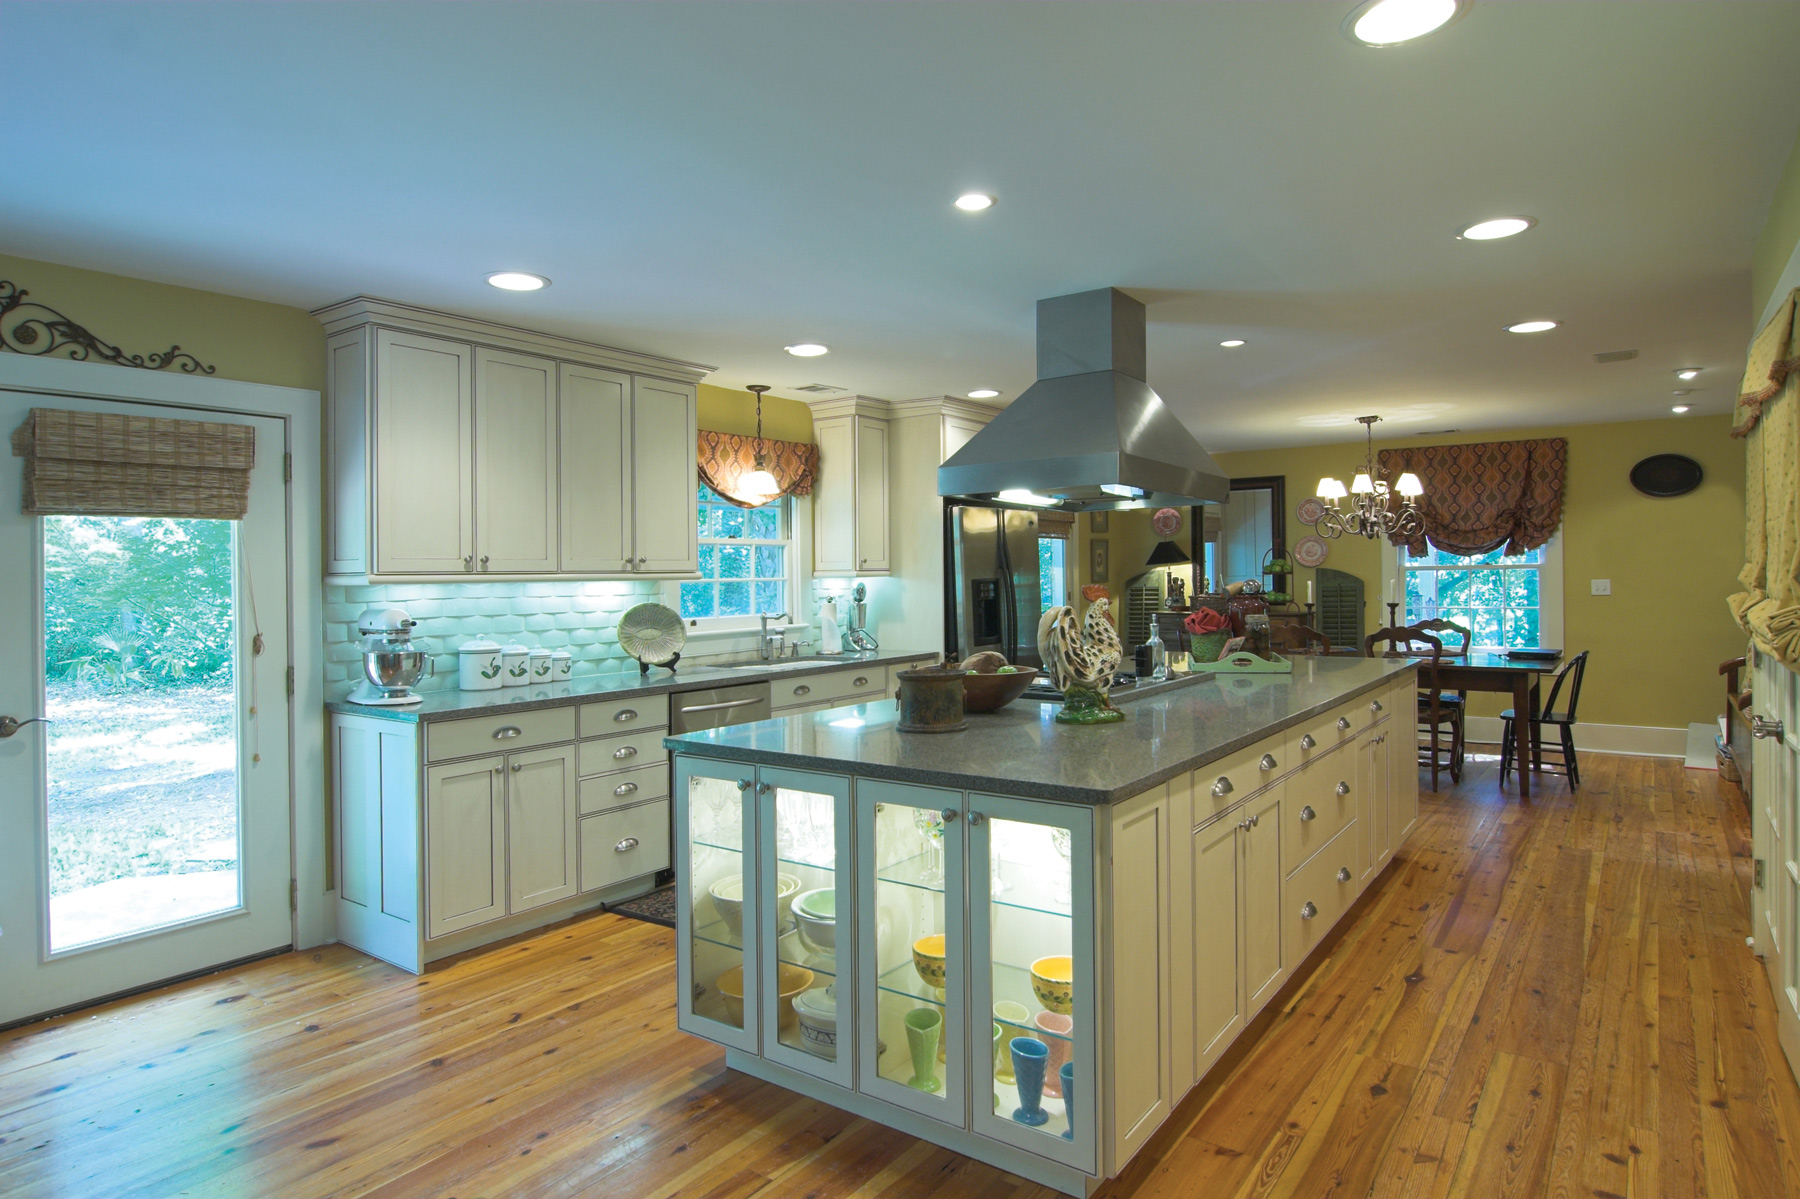 Using Under-Cabinet and Task Lighting For Function and Elegance